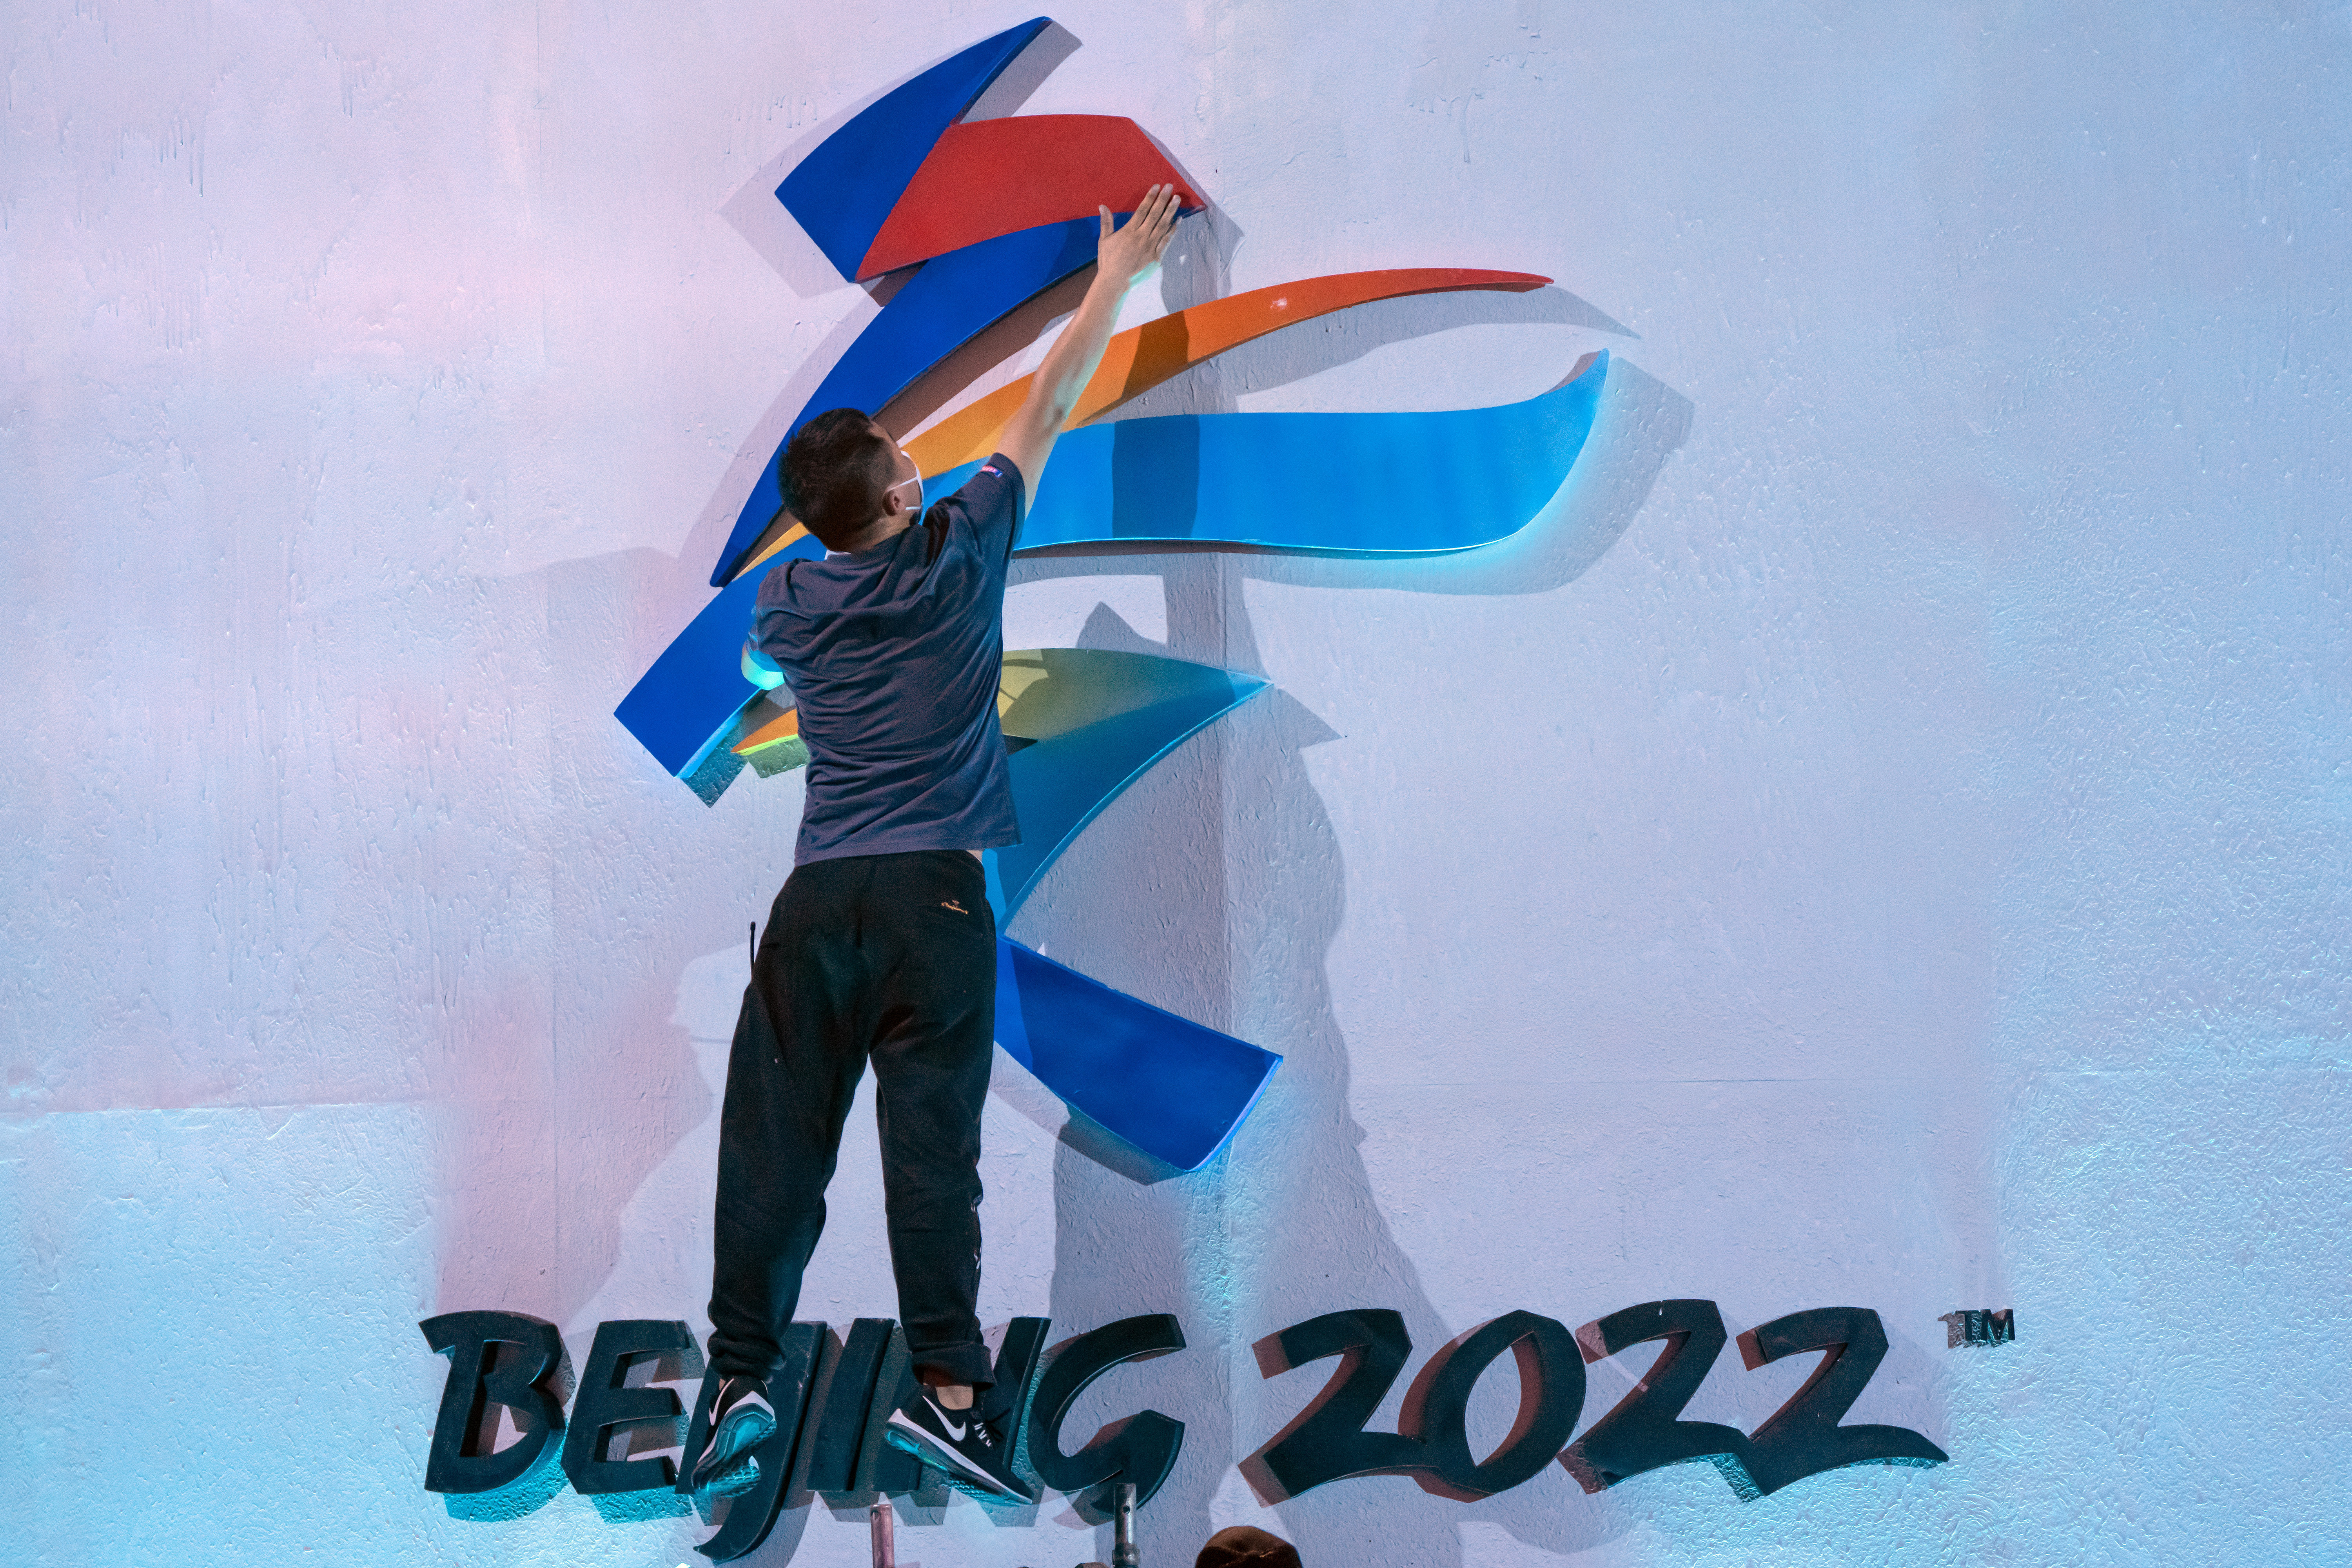 A crew member leaps to fix a logo for the 2022 Beijing Winter Olympics in Beijing on Friday, Sept. 17, 2021.